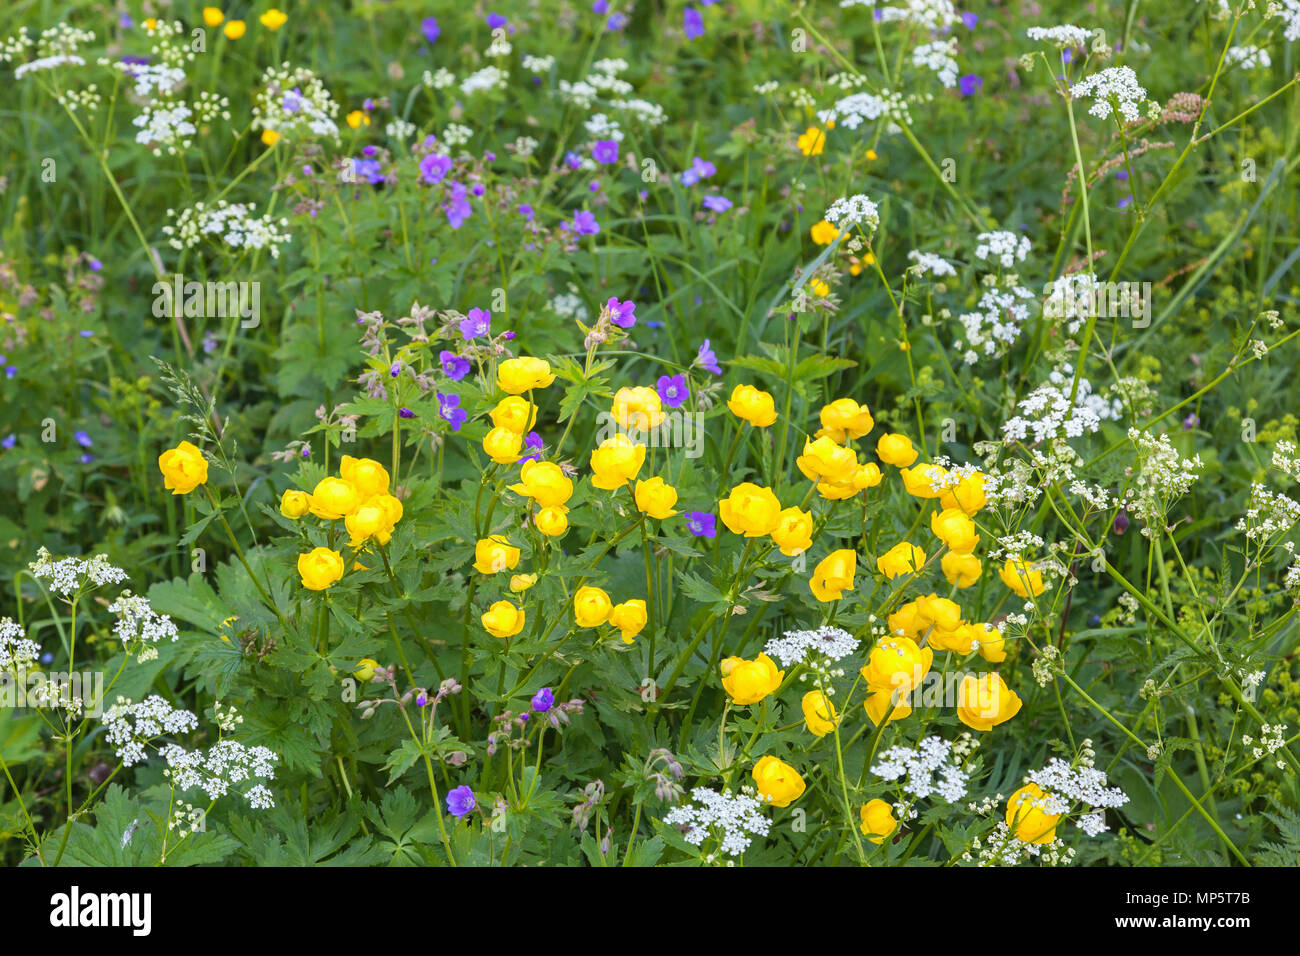 Globe flower that blooms in the meadow - Stock Image